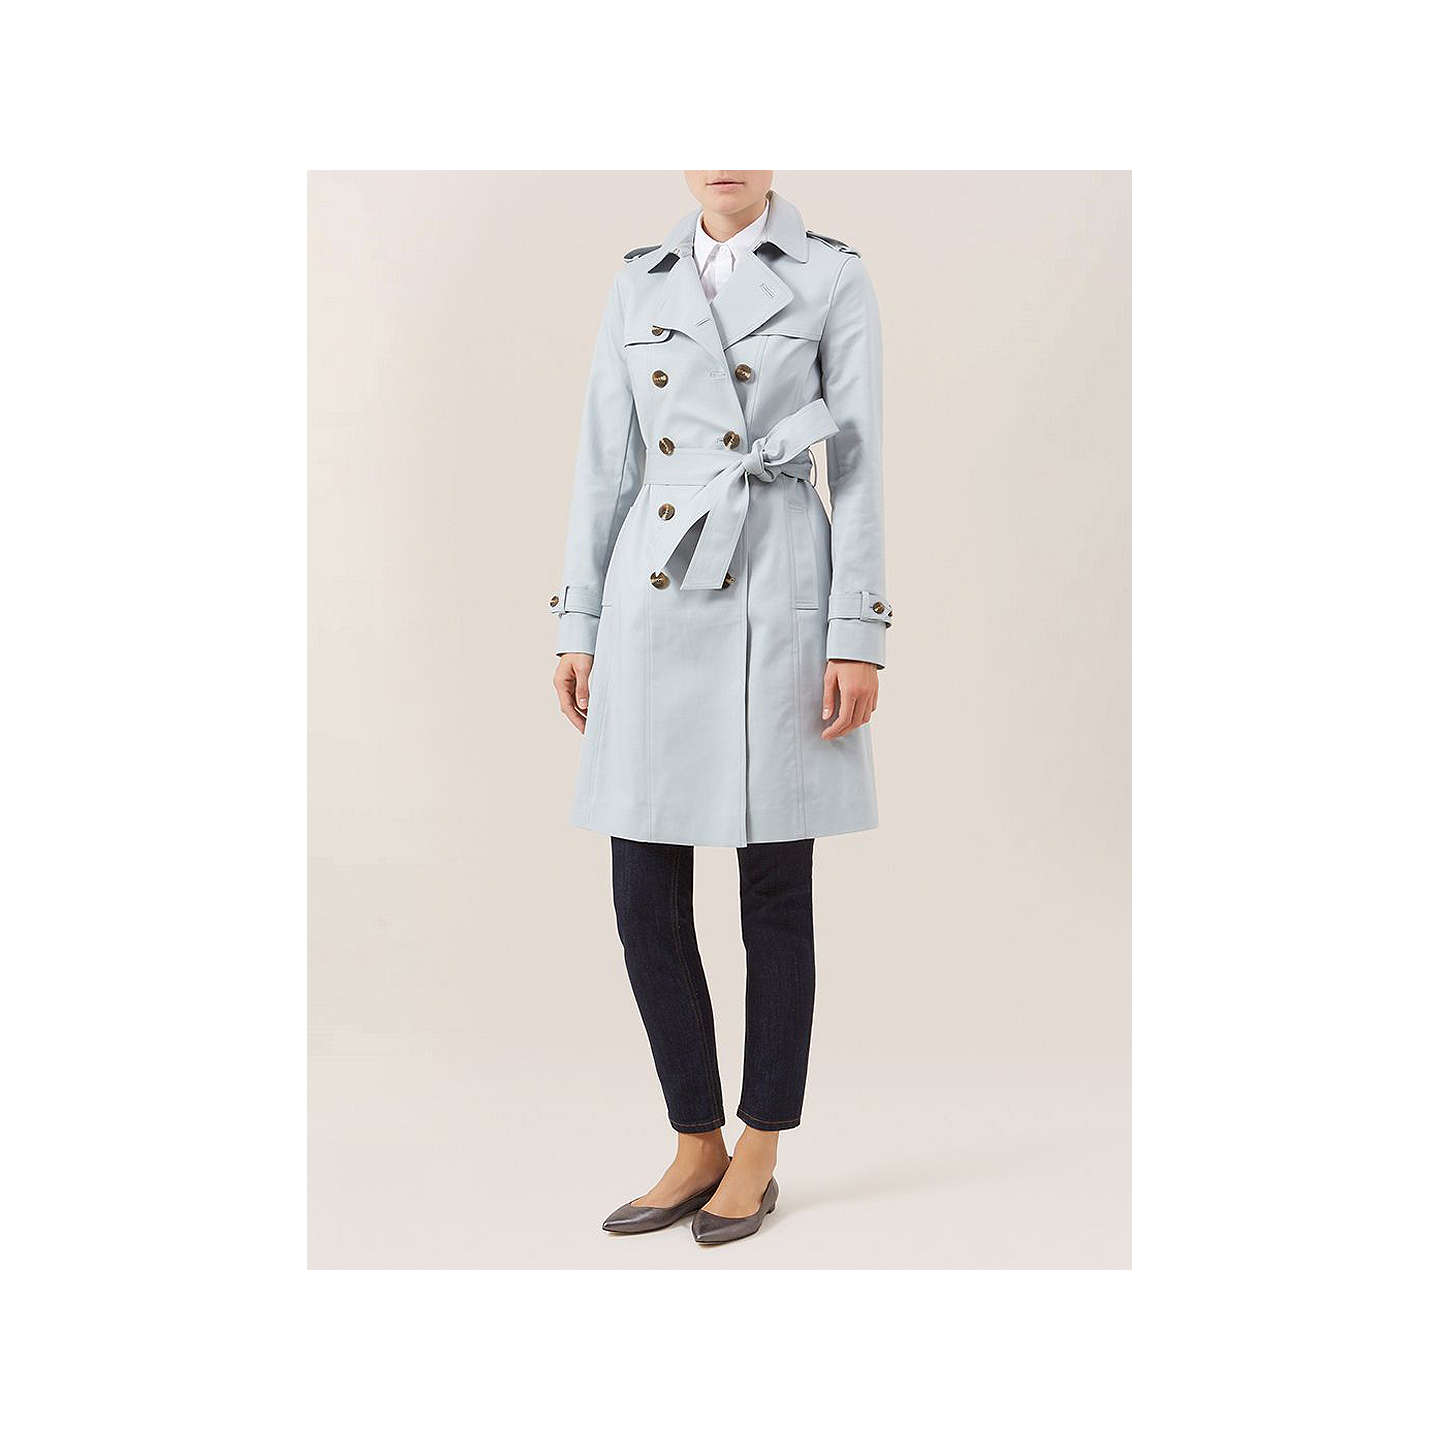 BuyHobbs London Saskia Trench Coat, Frost Blue, 6 Online at johnlewis.com